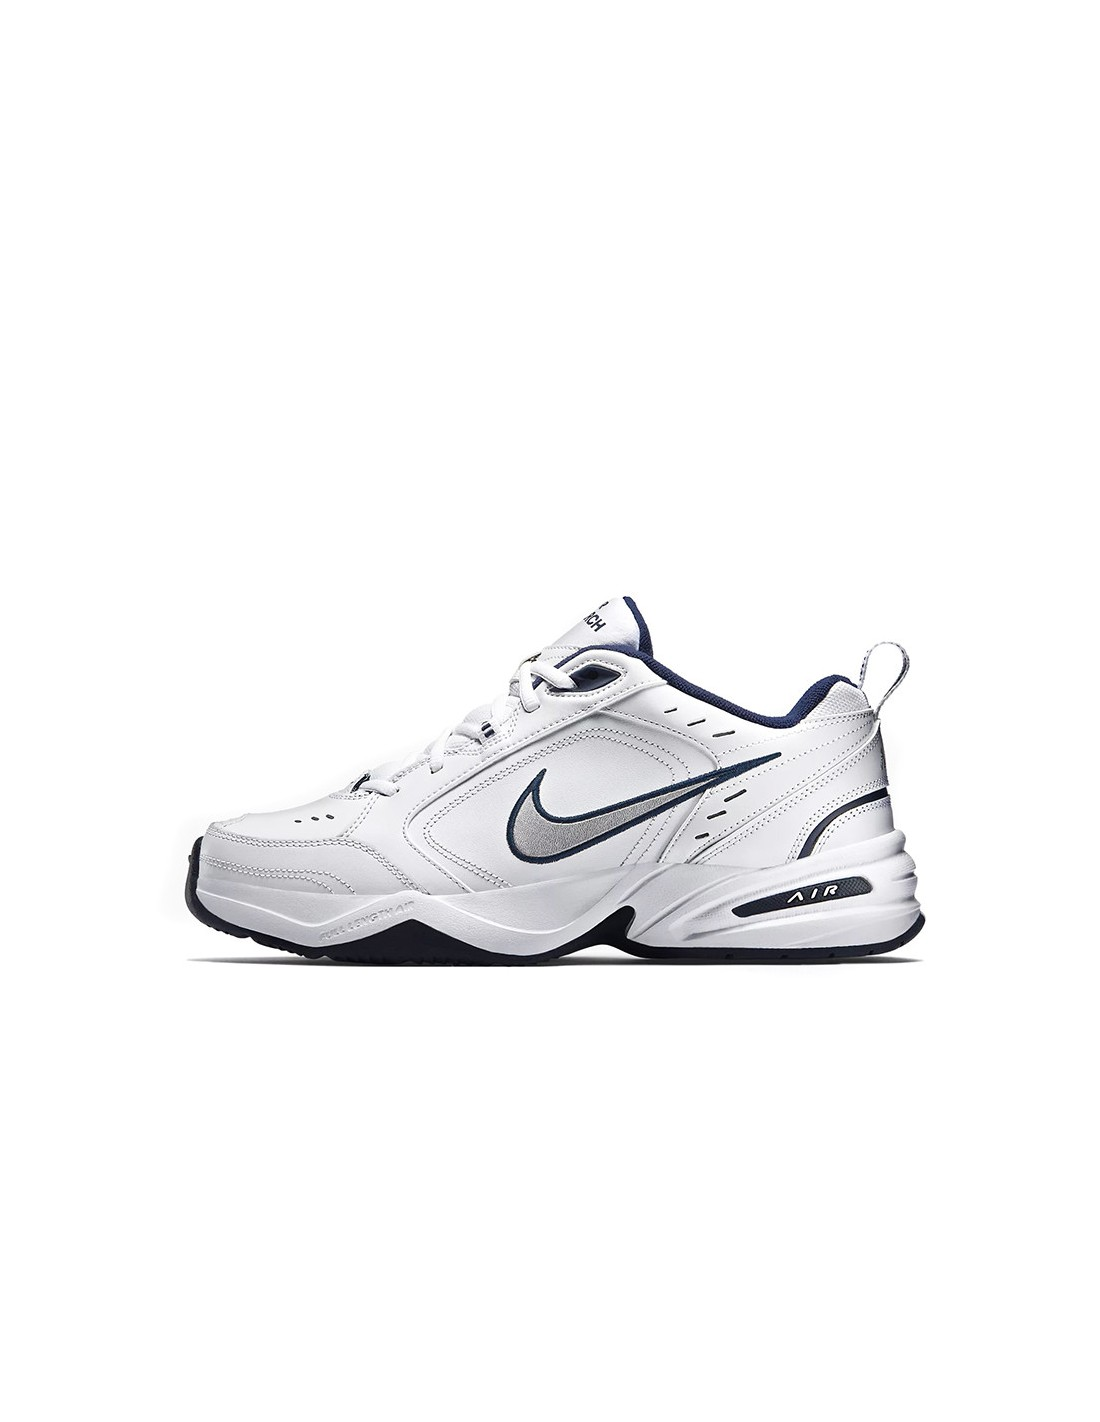 presente estudiar Miseria  New sneakers NIKE AIR MONARCH IV white 415445 on our shop online